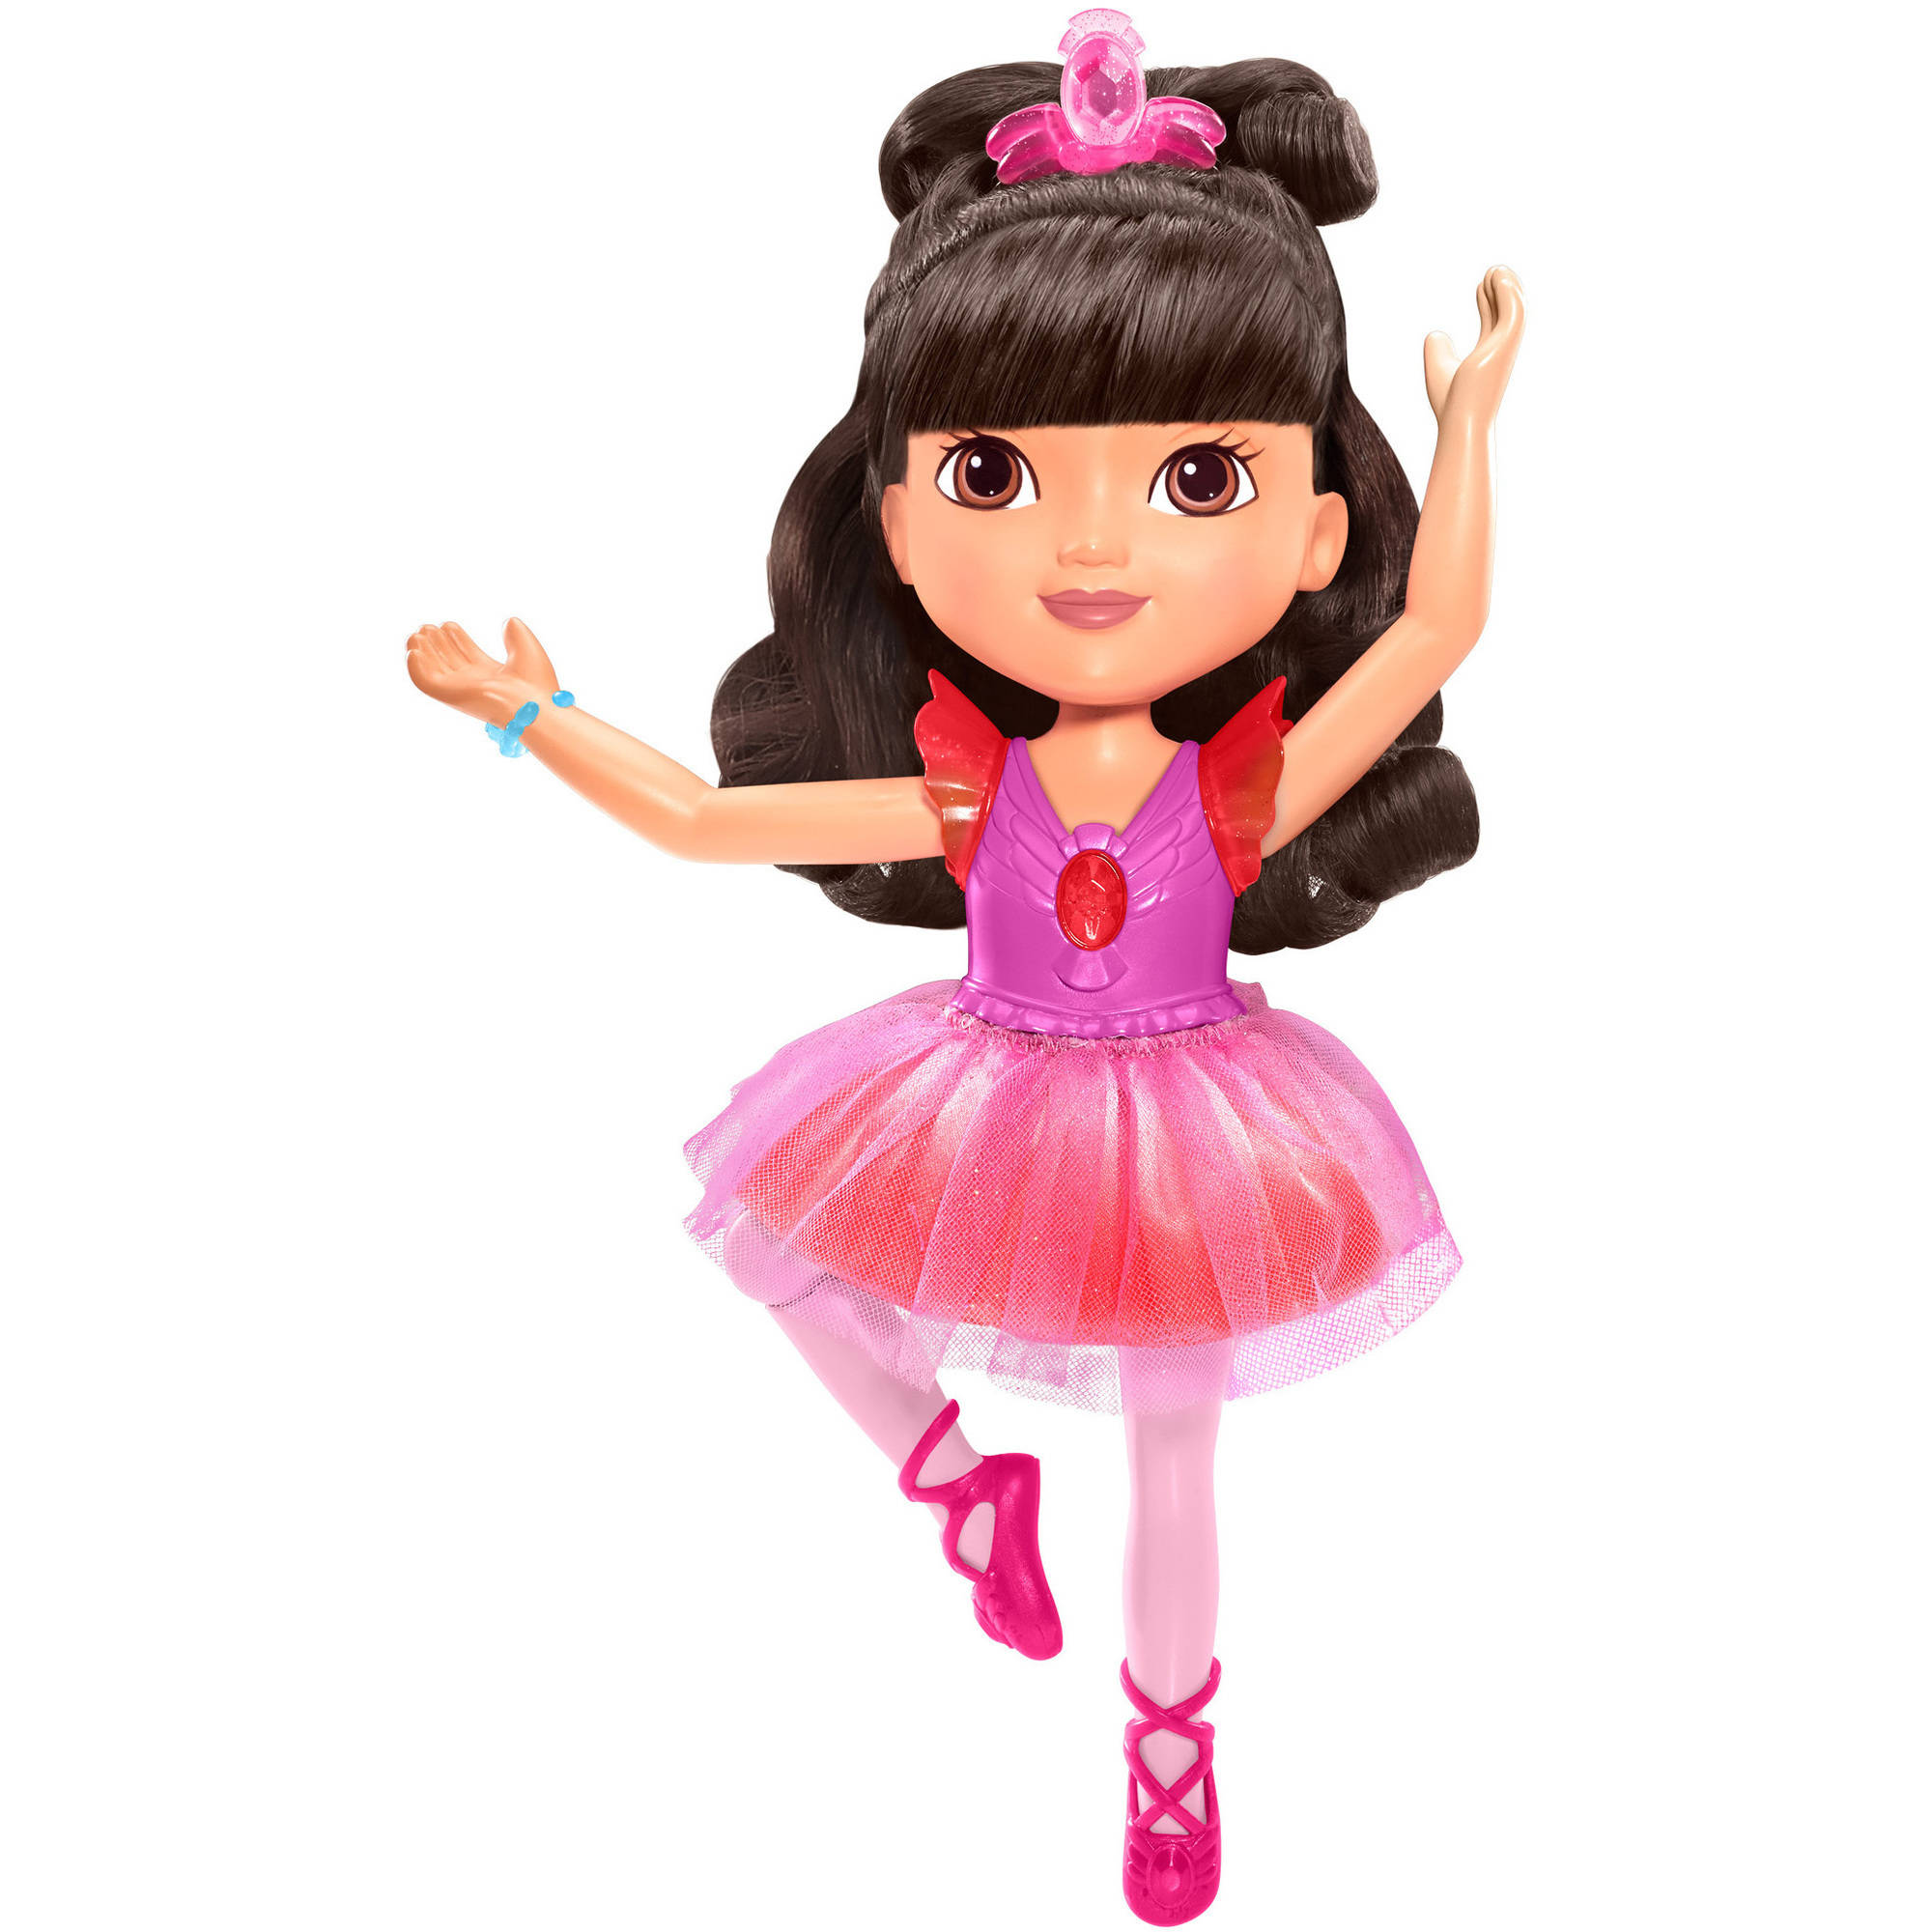 Fisher Price Nickelodeon Dora and Friends Sparkle & Spin Ballerina Dora by FISHER PRICE